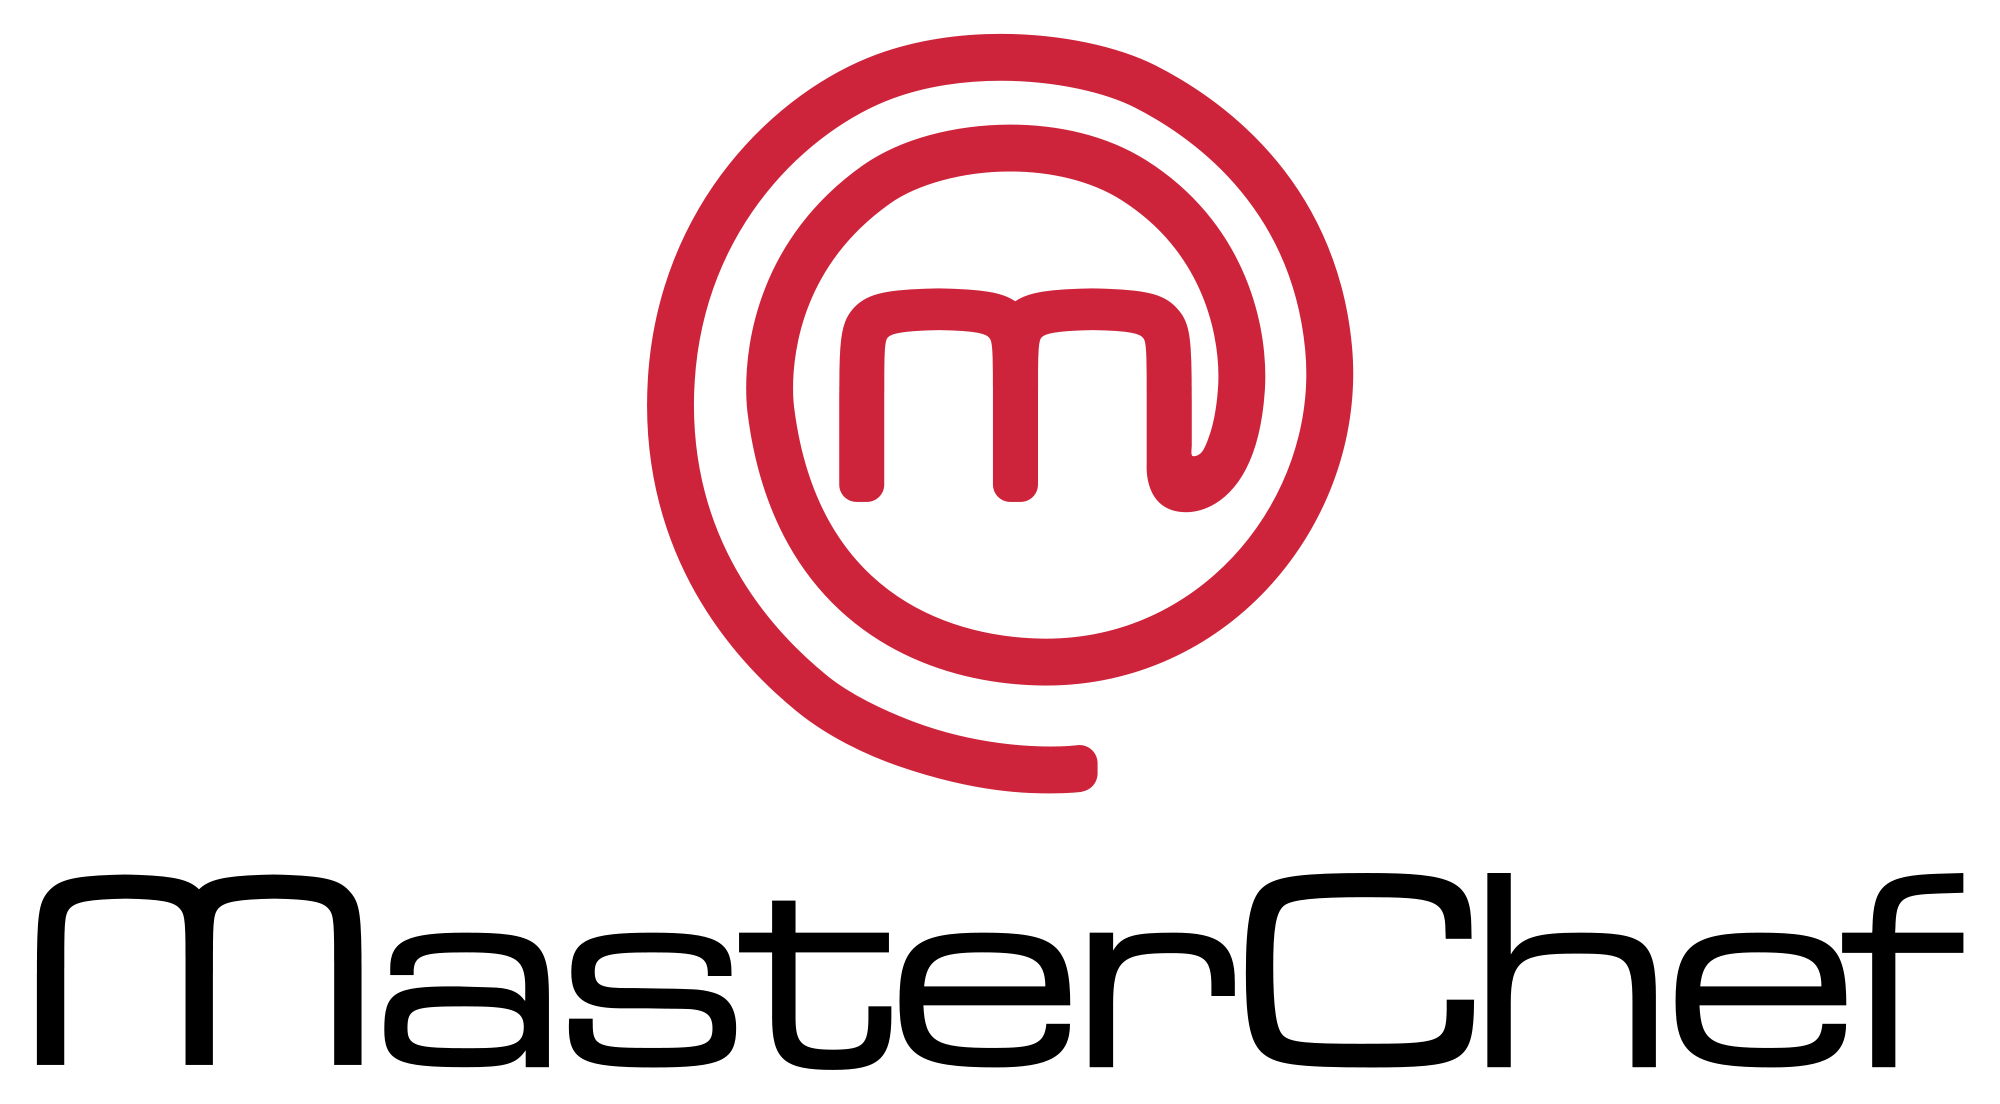 svg transparent Masterchef logo using wordmark. Chef clipart top chef.